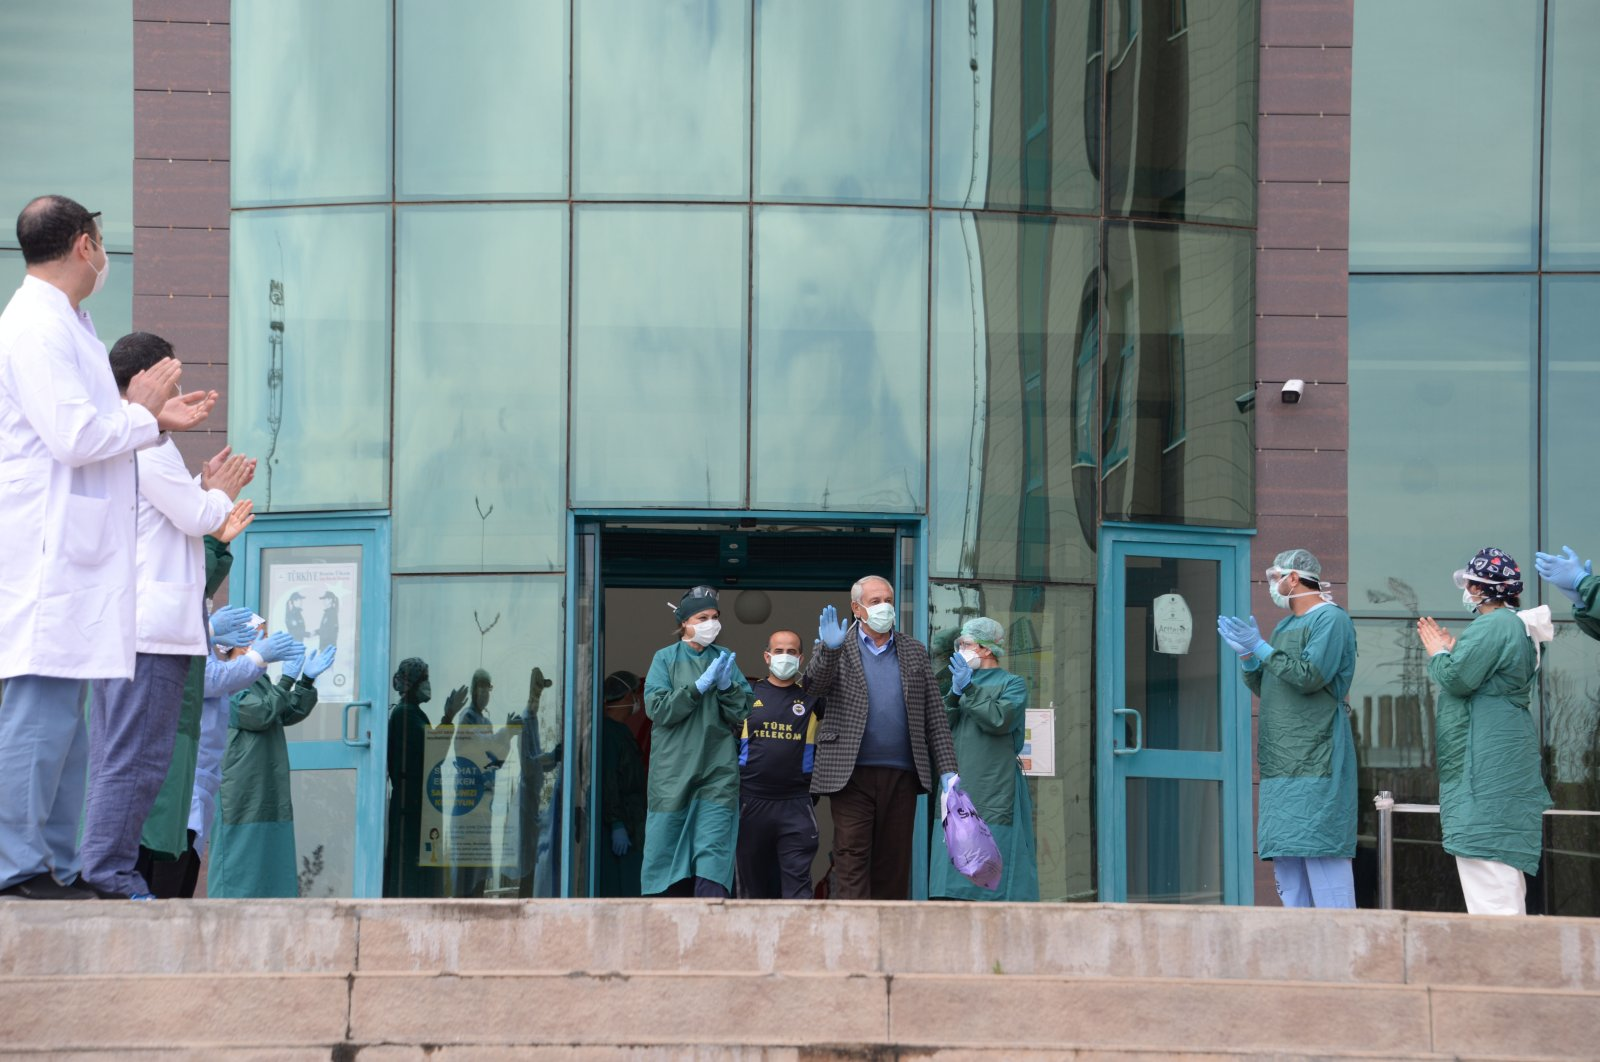 Staff applaud as a COVID-19 patient leaves hospital after recovery, in Diyarbakır, southeastern Turkey, March 17, 2021. (DHA PHOTO)